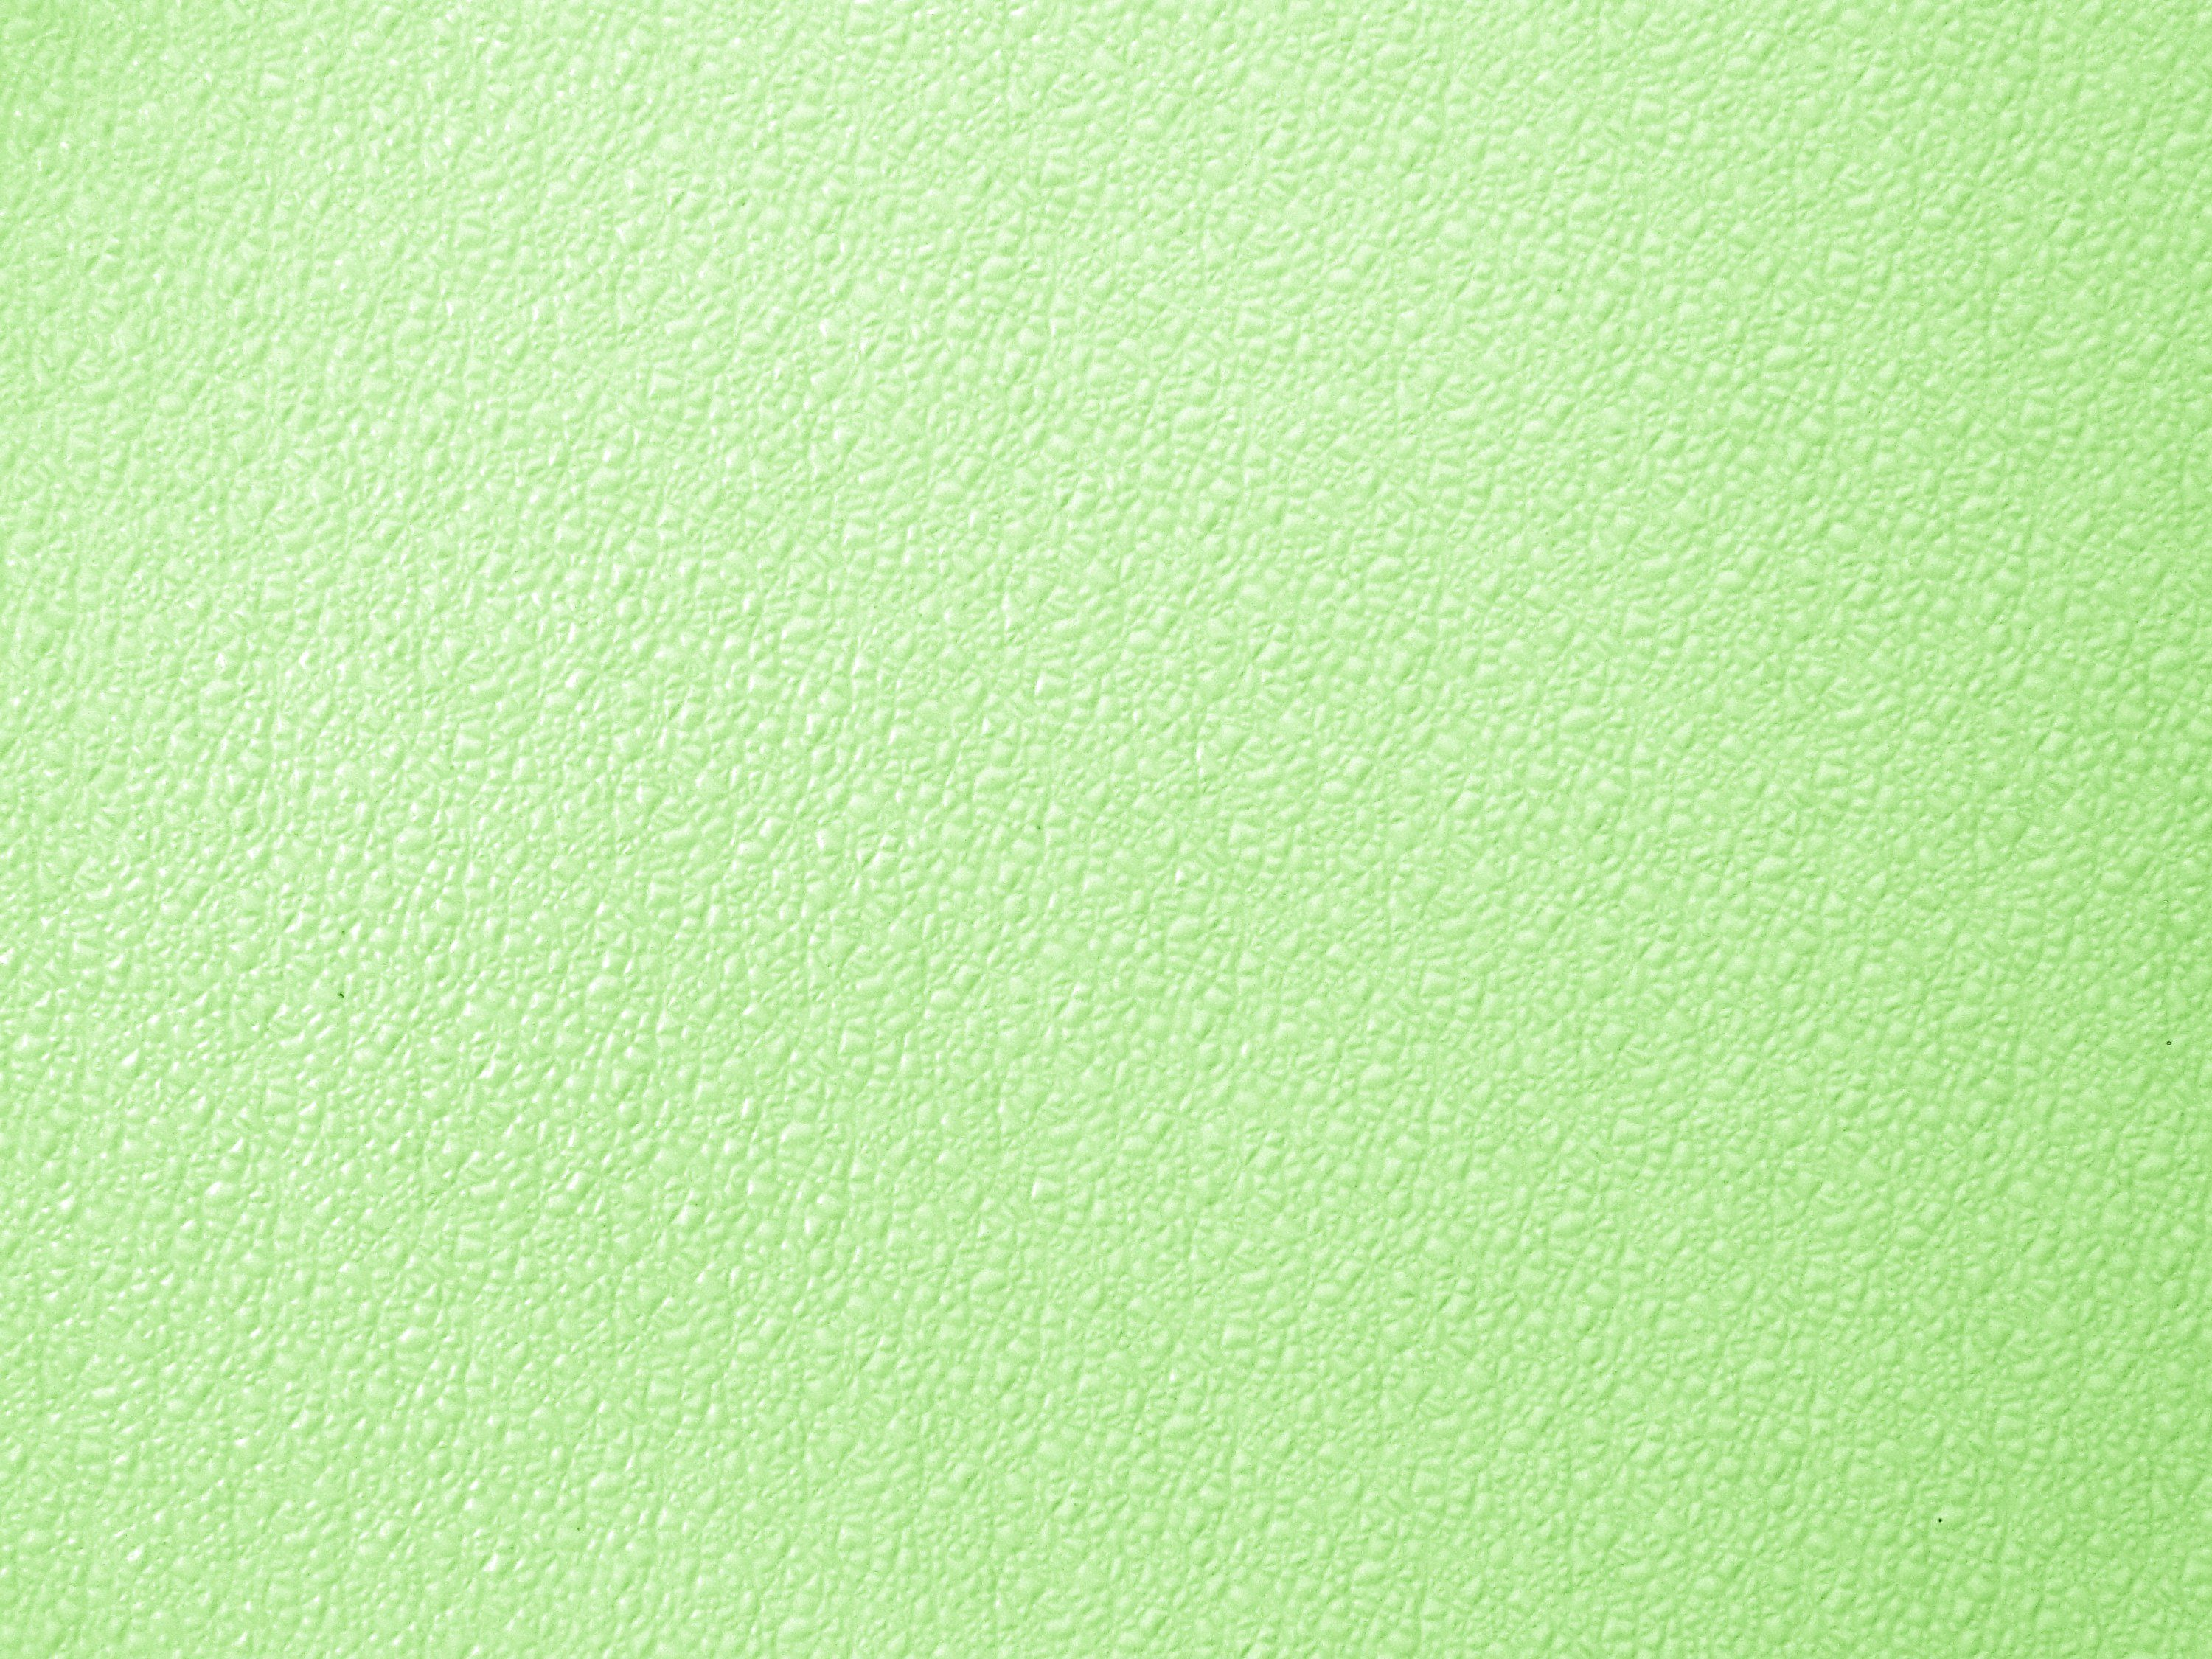 Free High Resolution Close Up Photo Of A Light Pistachio Green